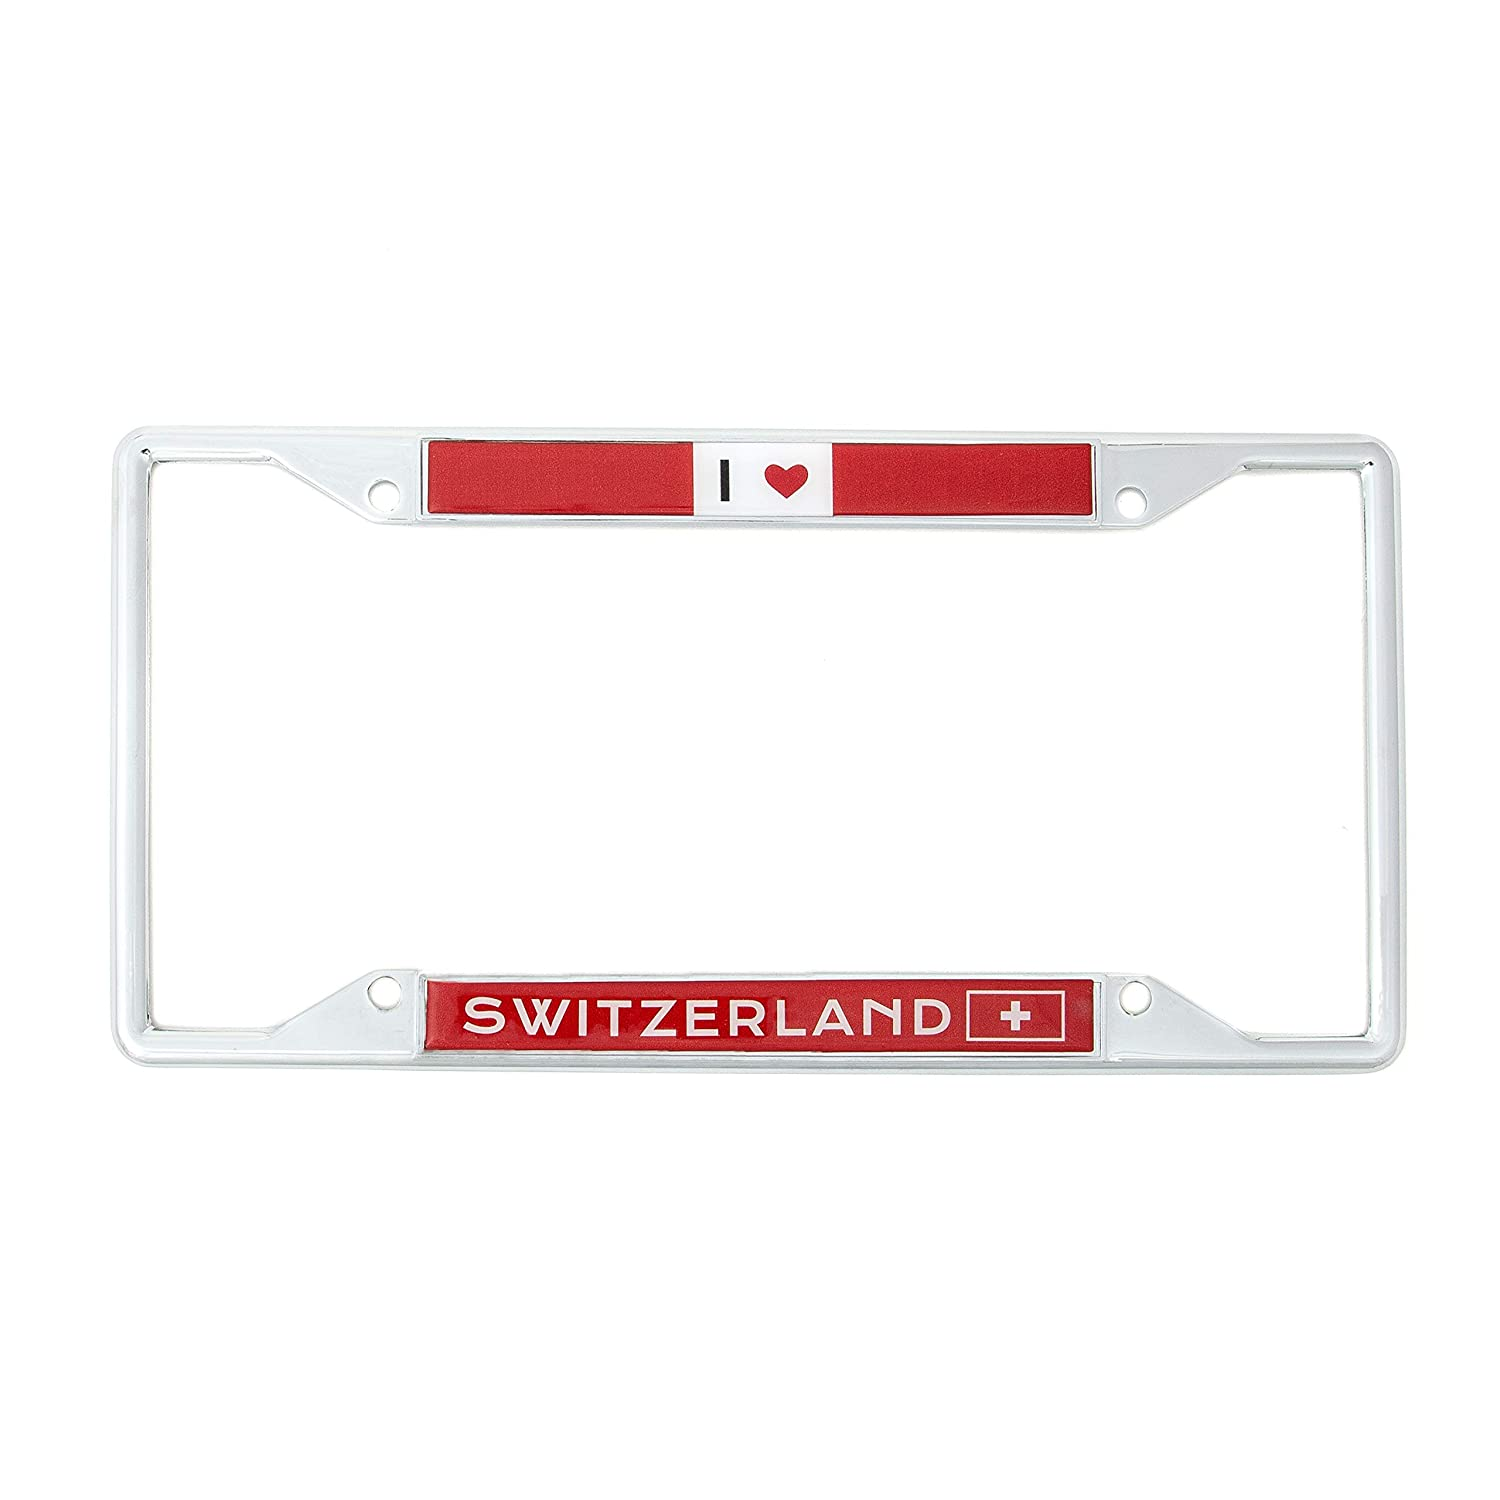 Desert Cactus Country of Switzerland I Heart Love License Plate Frame for Front Back of Car Vehicle Truck Swiss